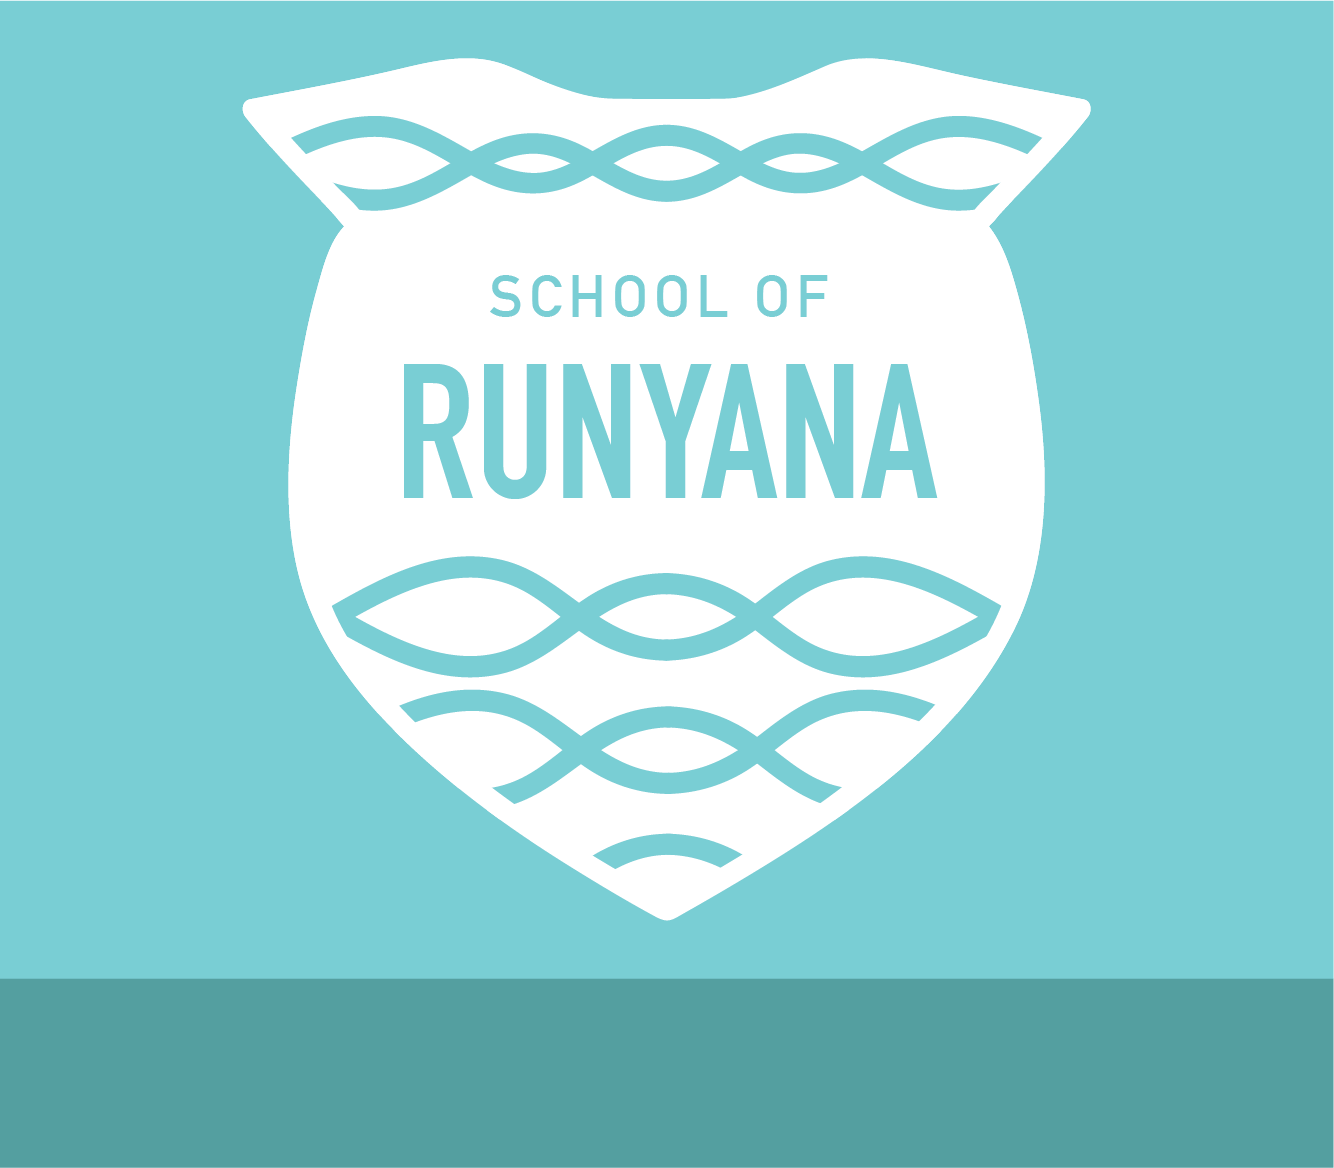 School of runyana